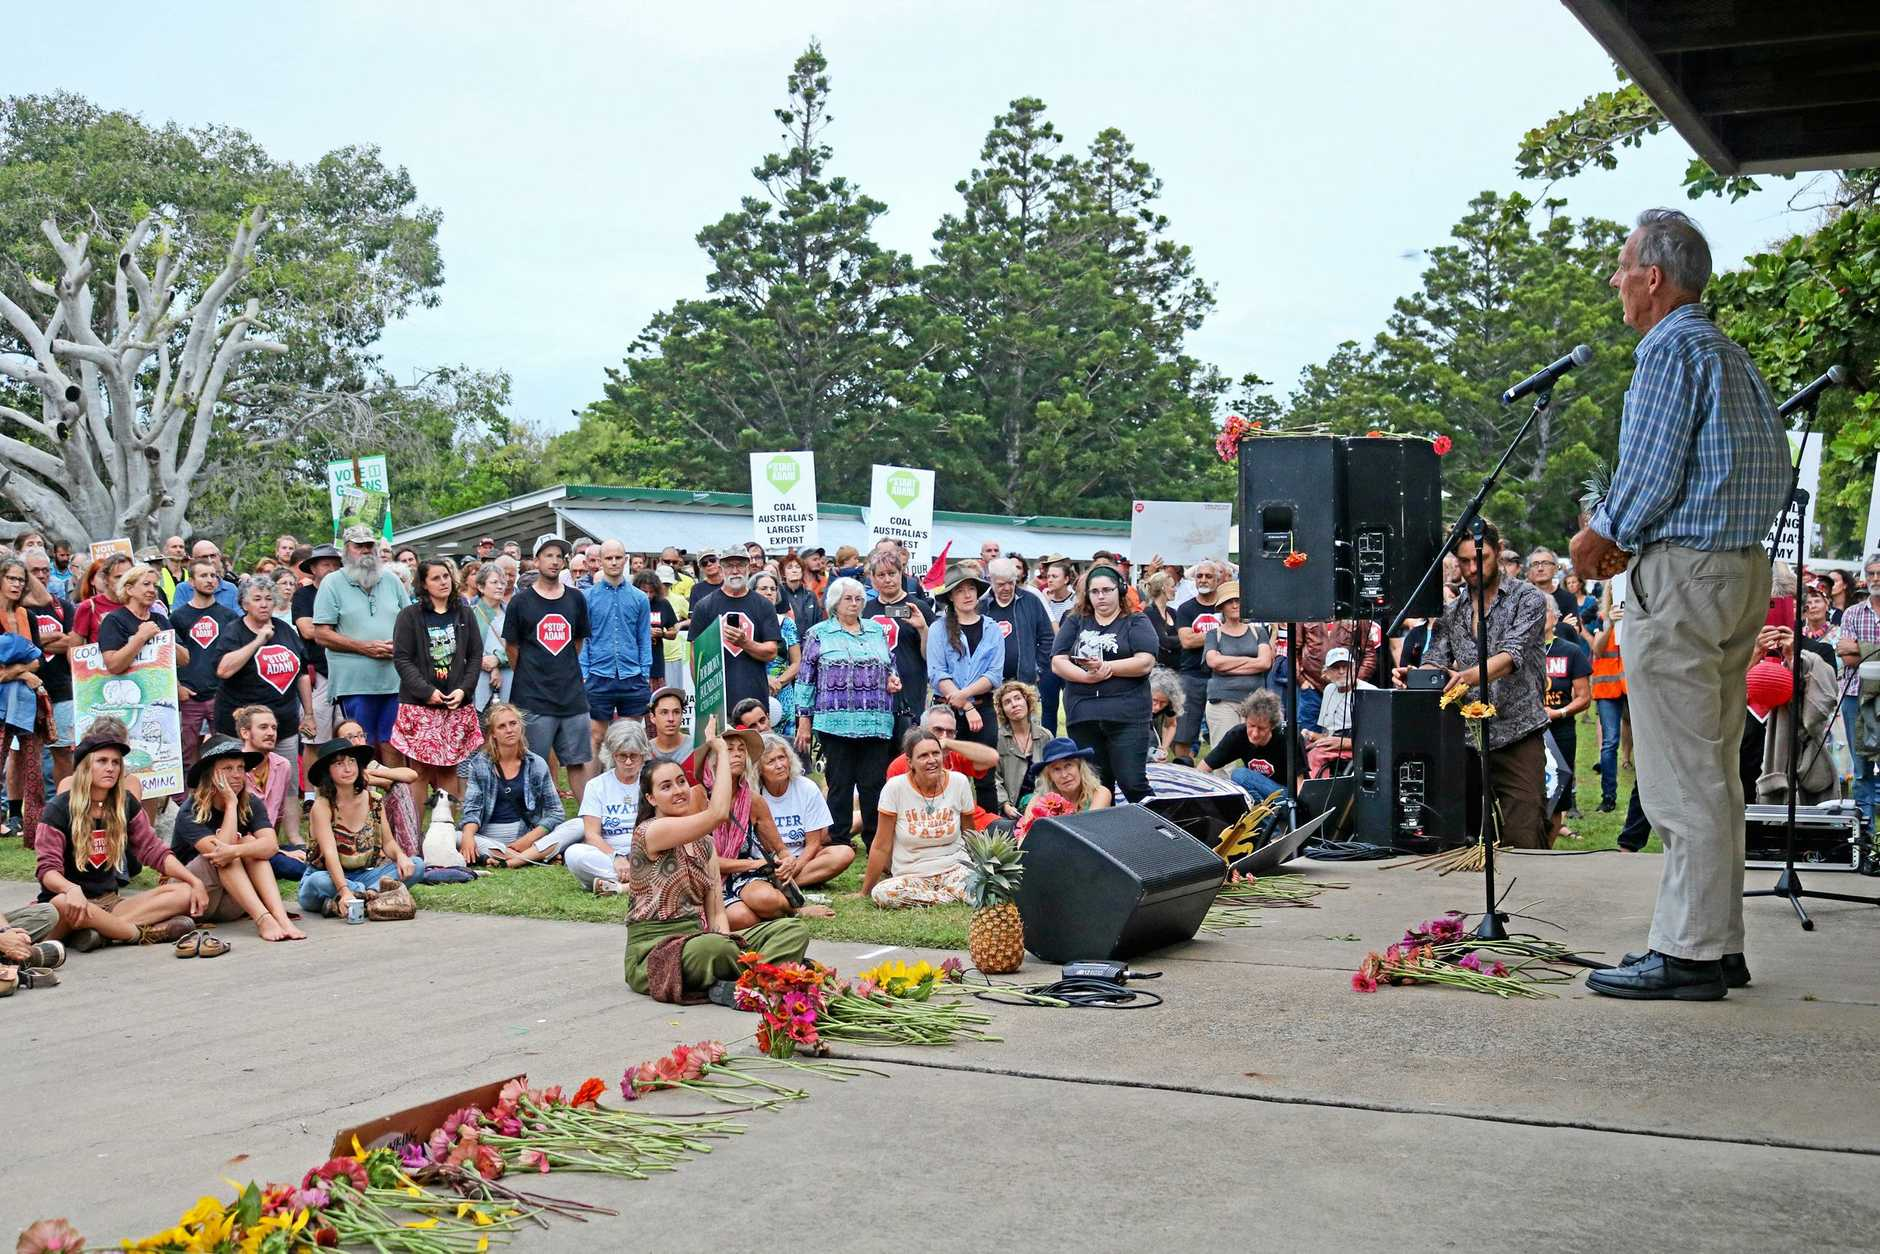 Dr Bob Brown faced the predicament of addressing both supporters and opponents at Emu Park yesterday.